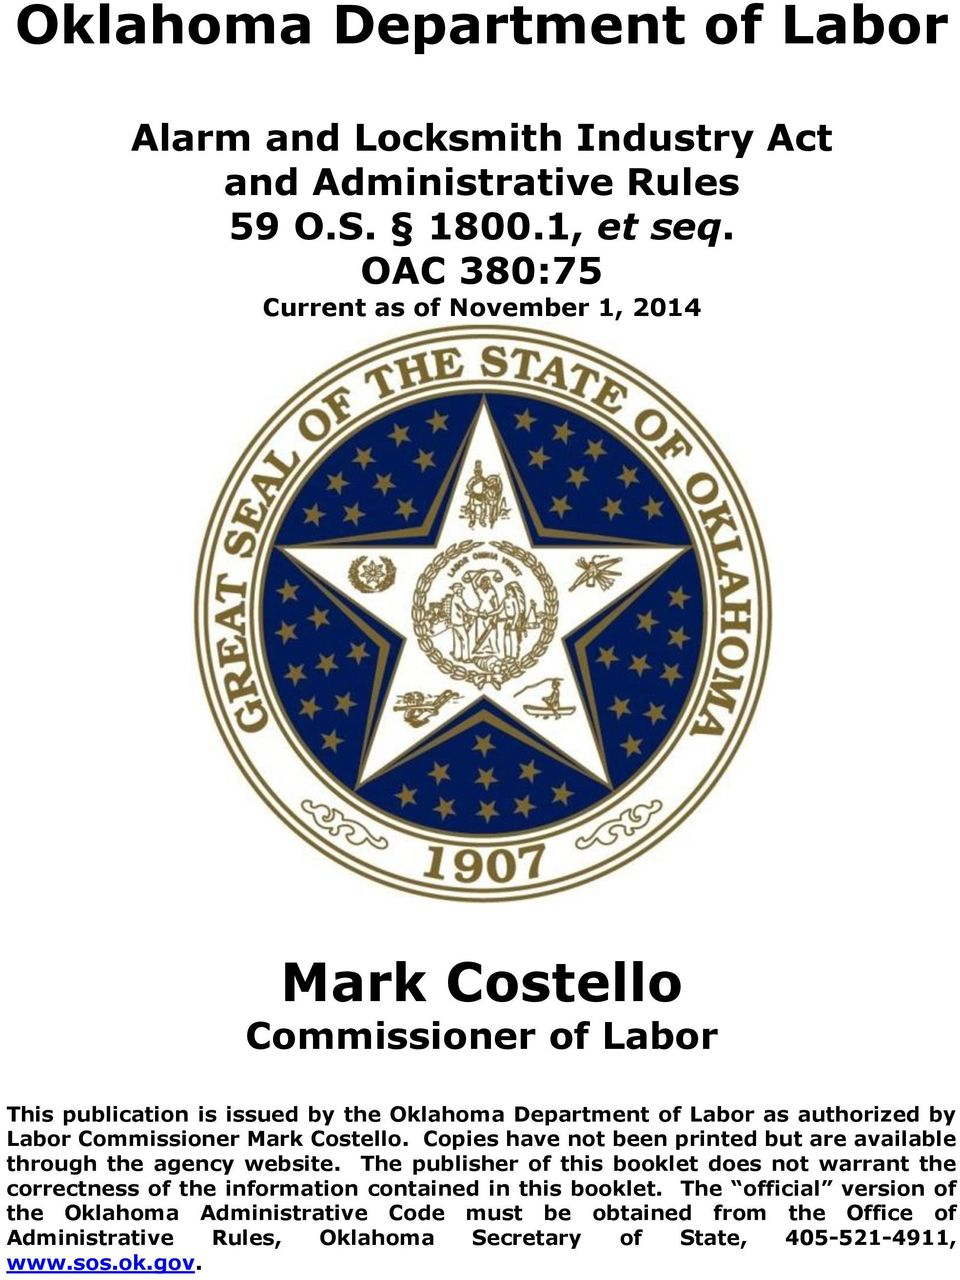 Commissioner Mark Costello. Copies have not been printed but are available through the agency website.